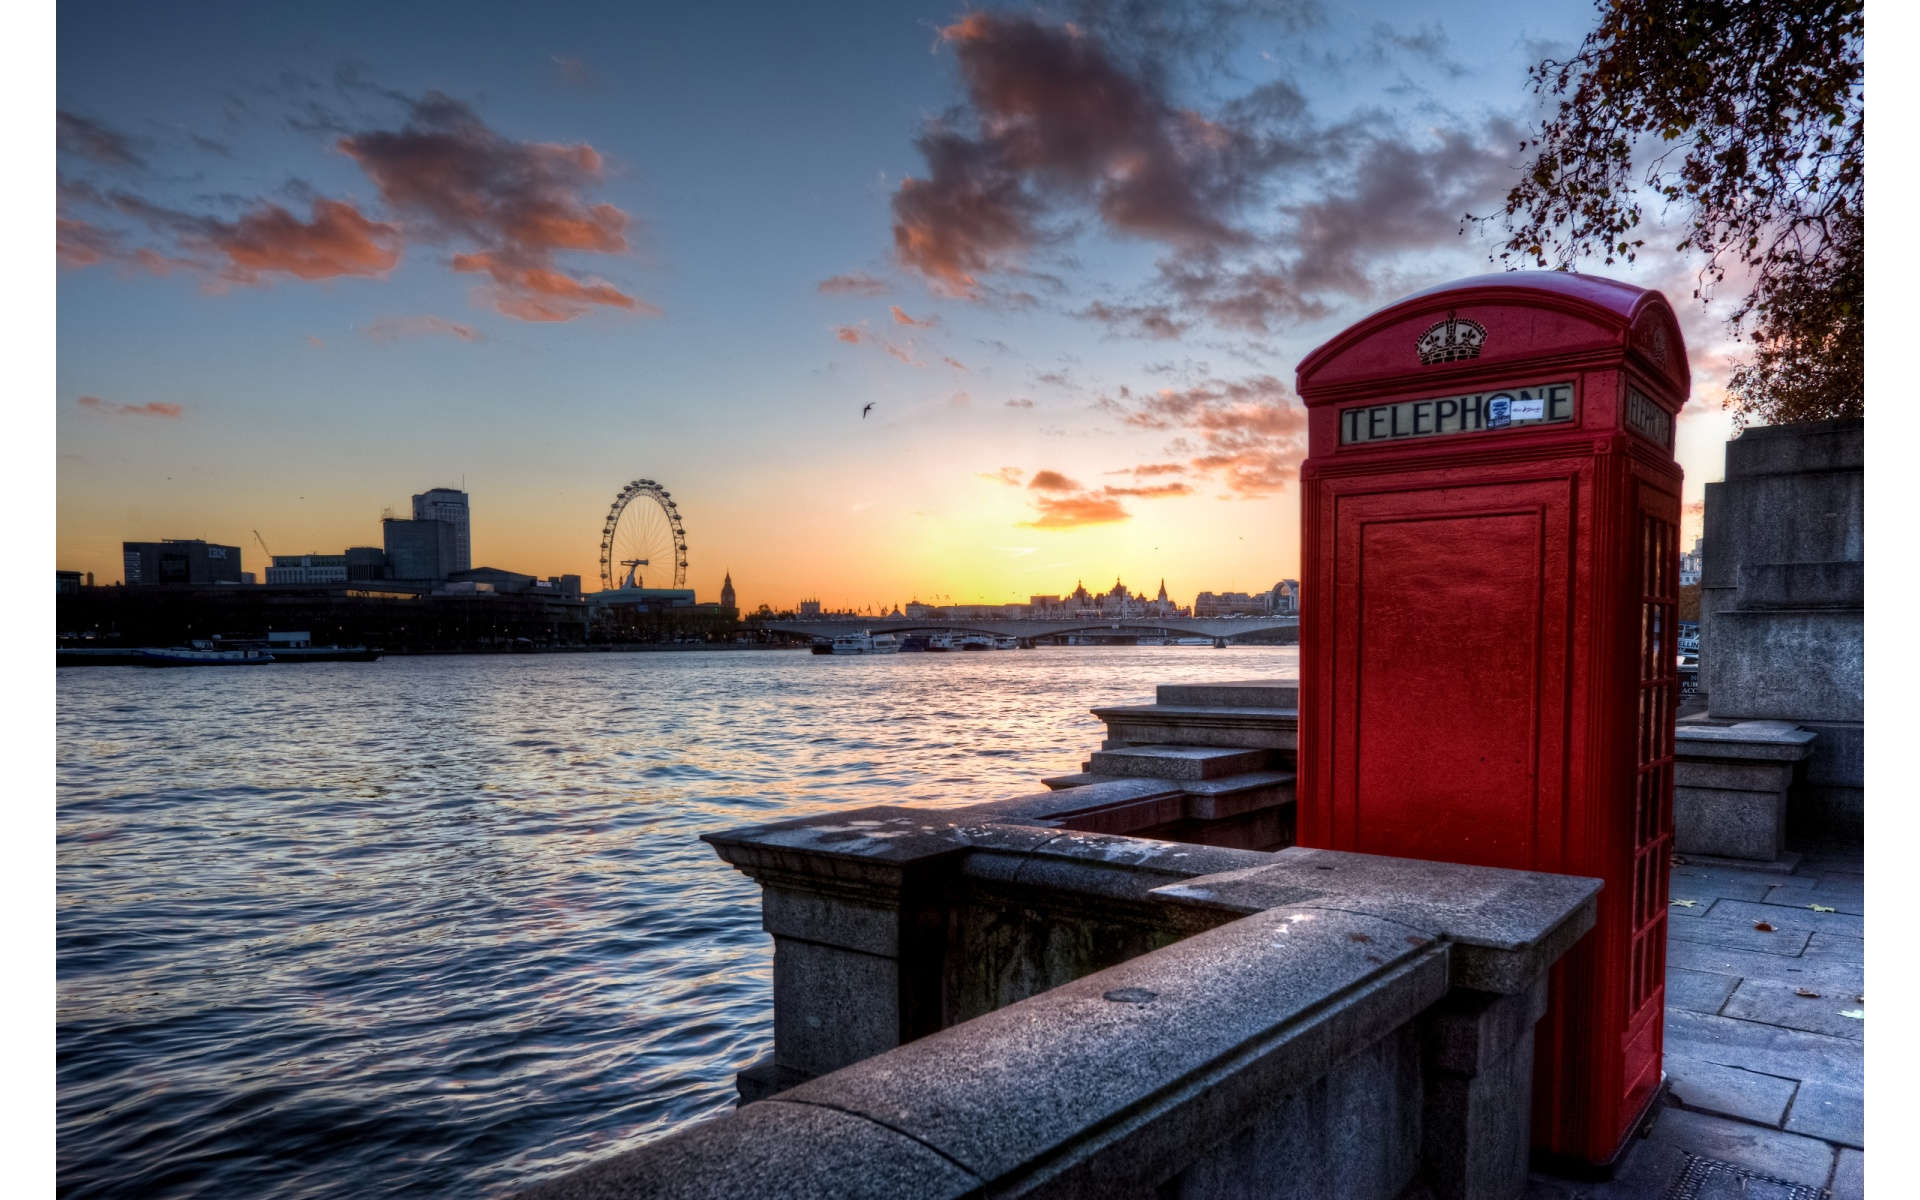 London skyline with telephone booth wallpapers 1920x1200 for London cityscape wallpaper